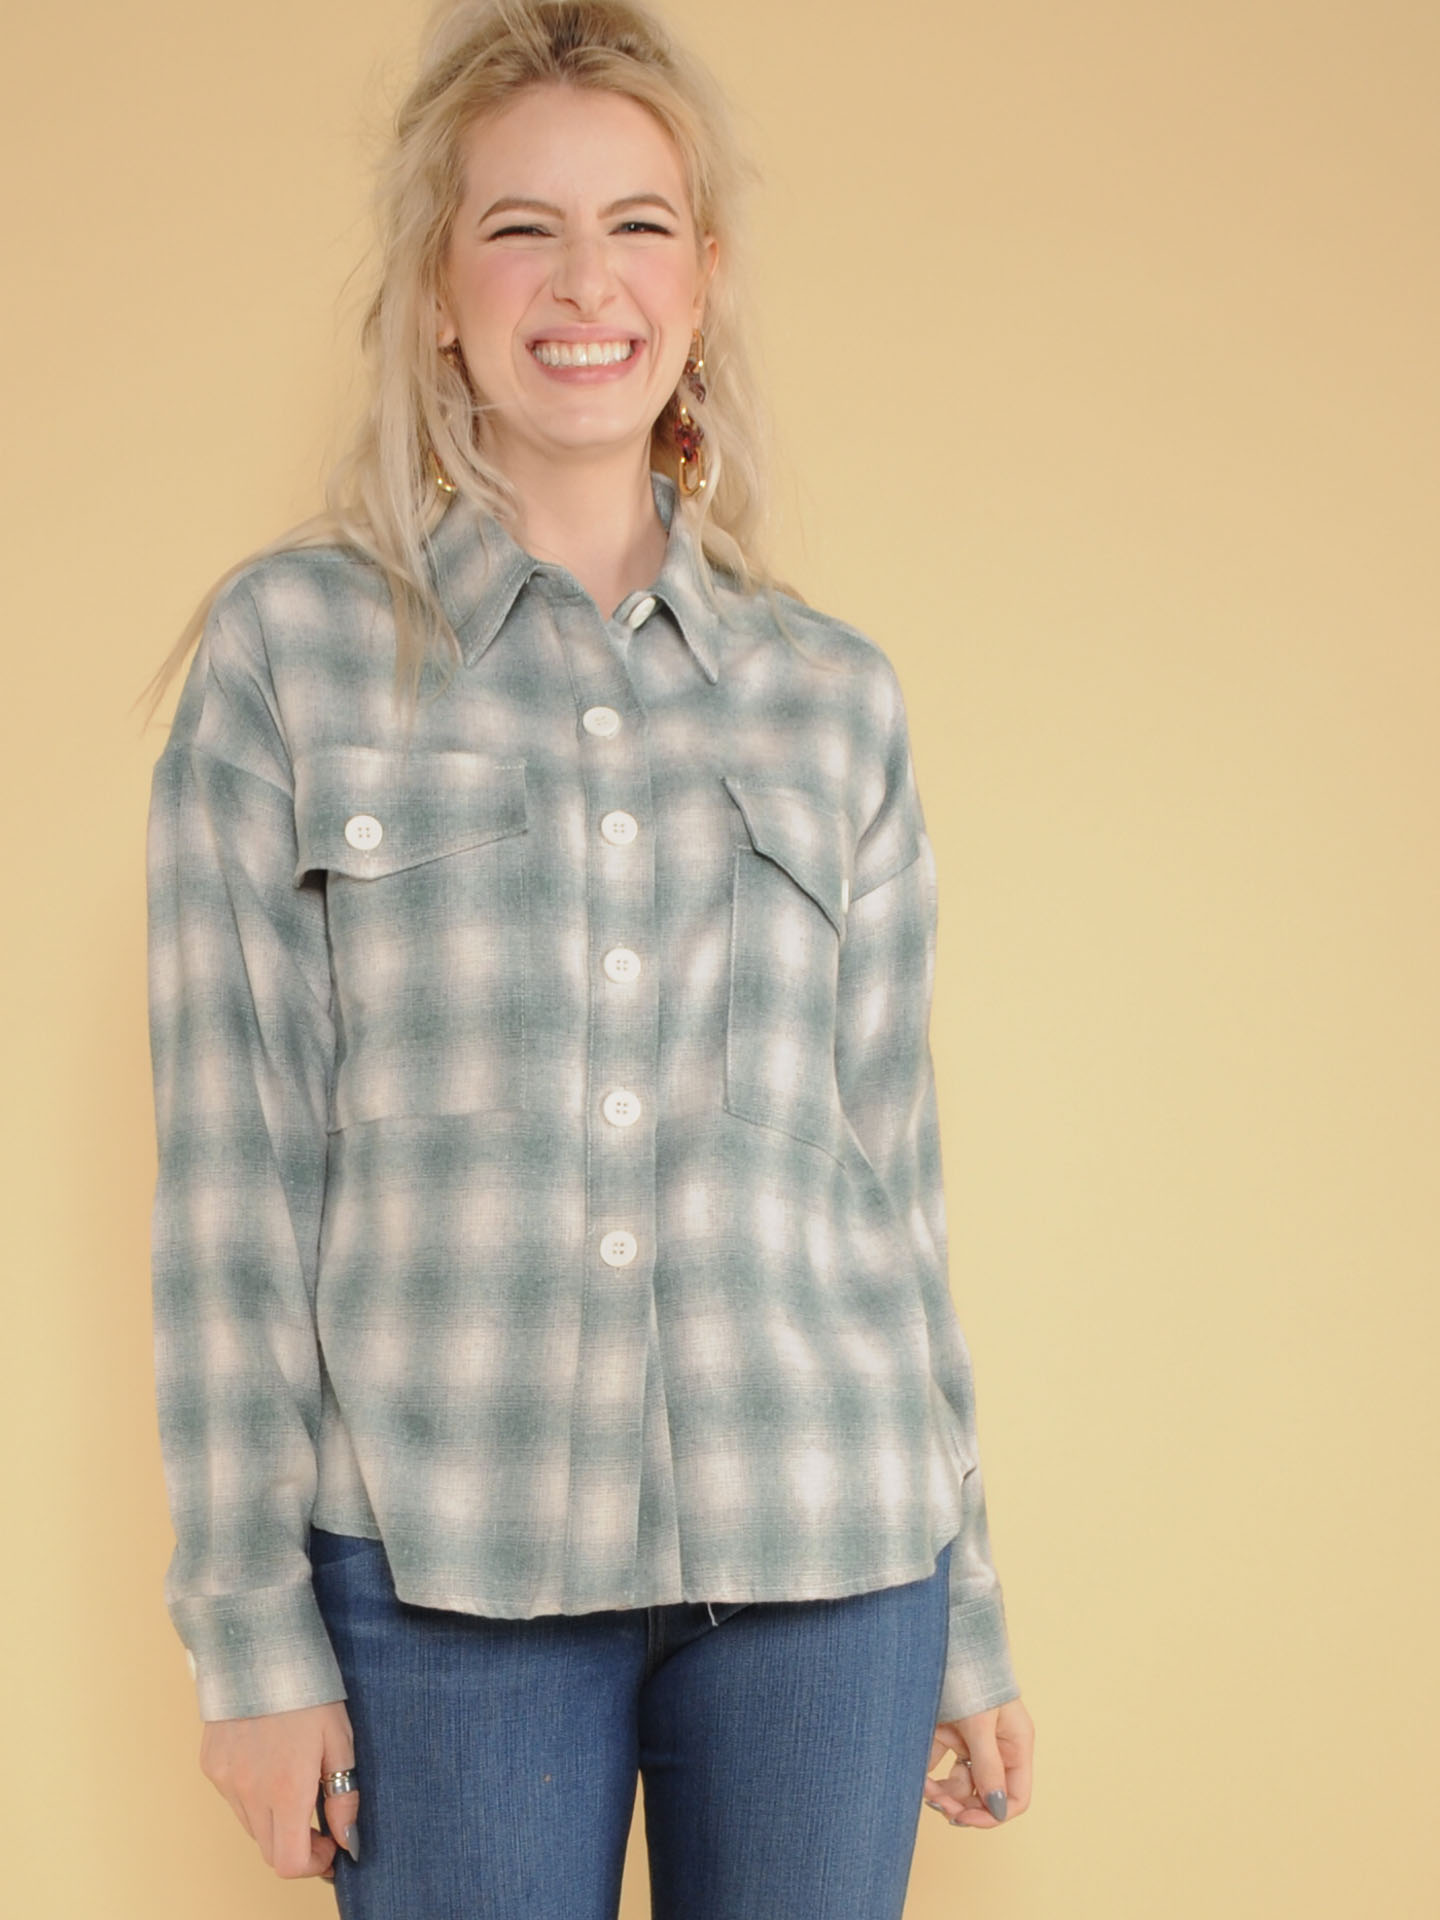 Soft Blue Checker Button Up Nyla Flannel Top